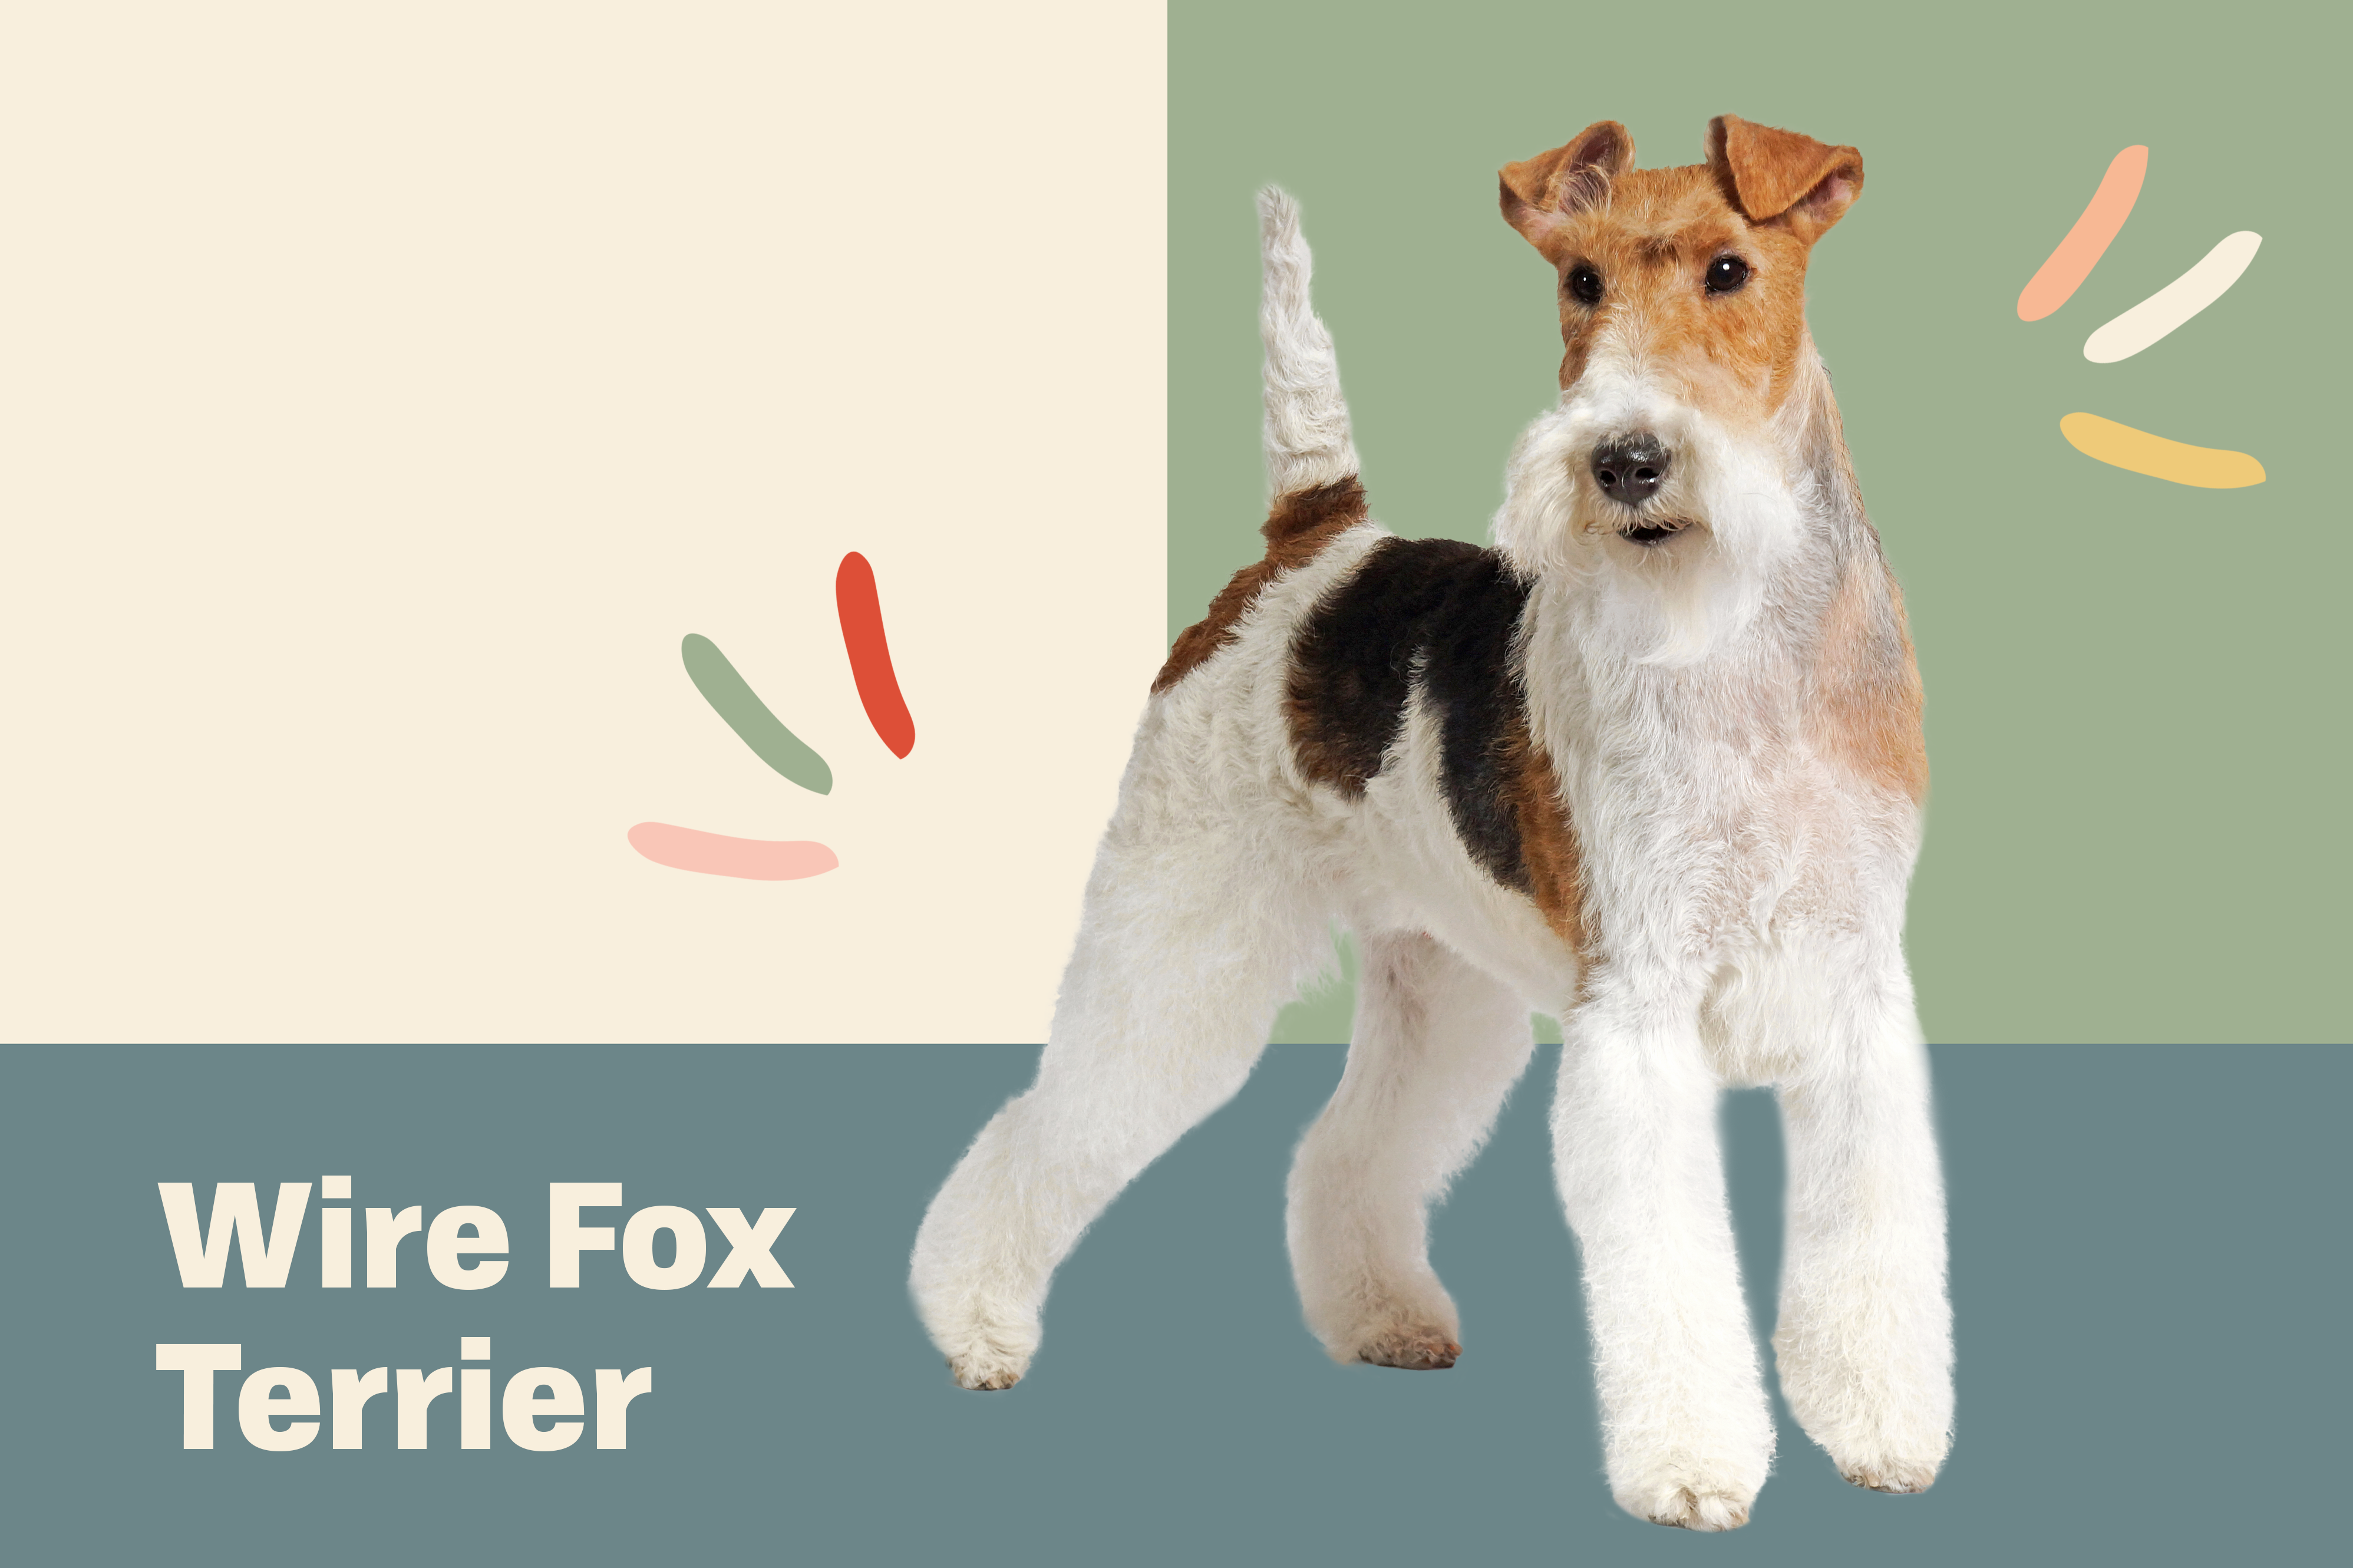 wire fox terrier dog breed profile treatment dog on top of illustrated background